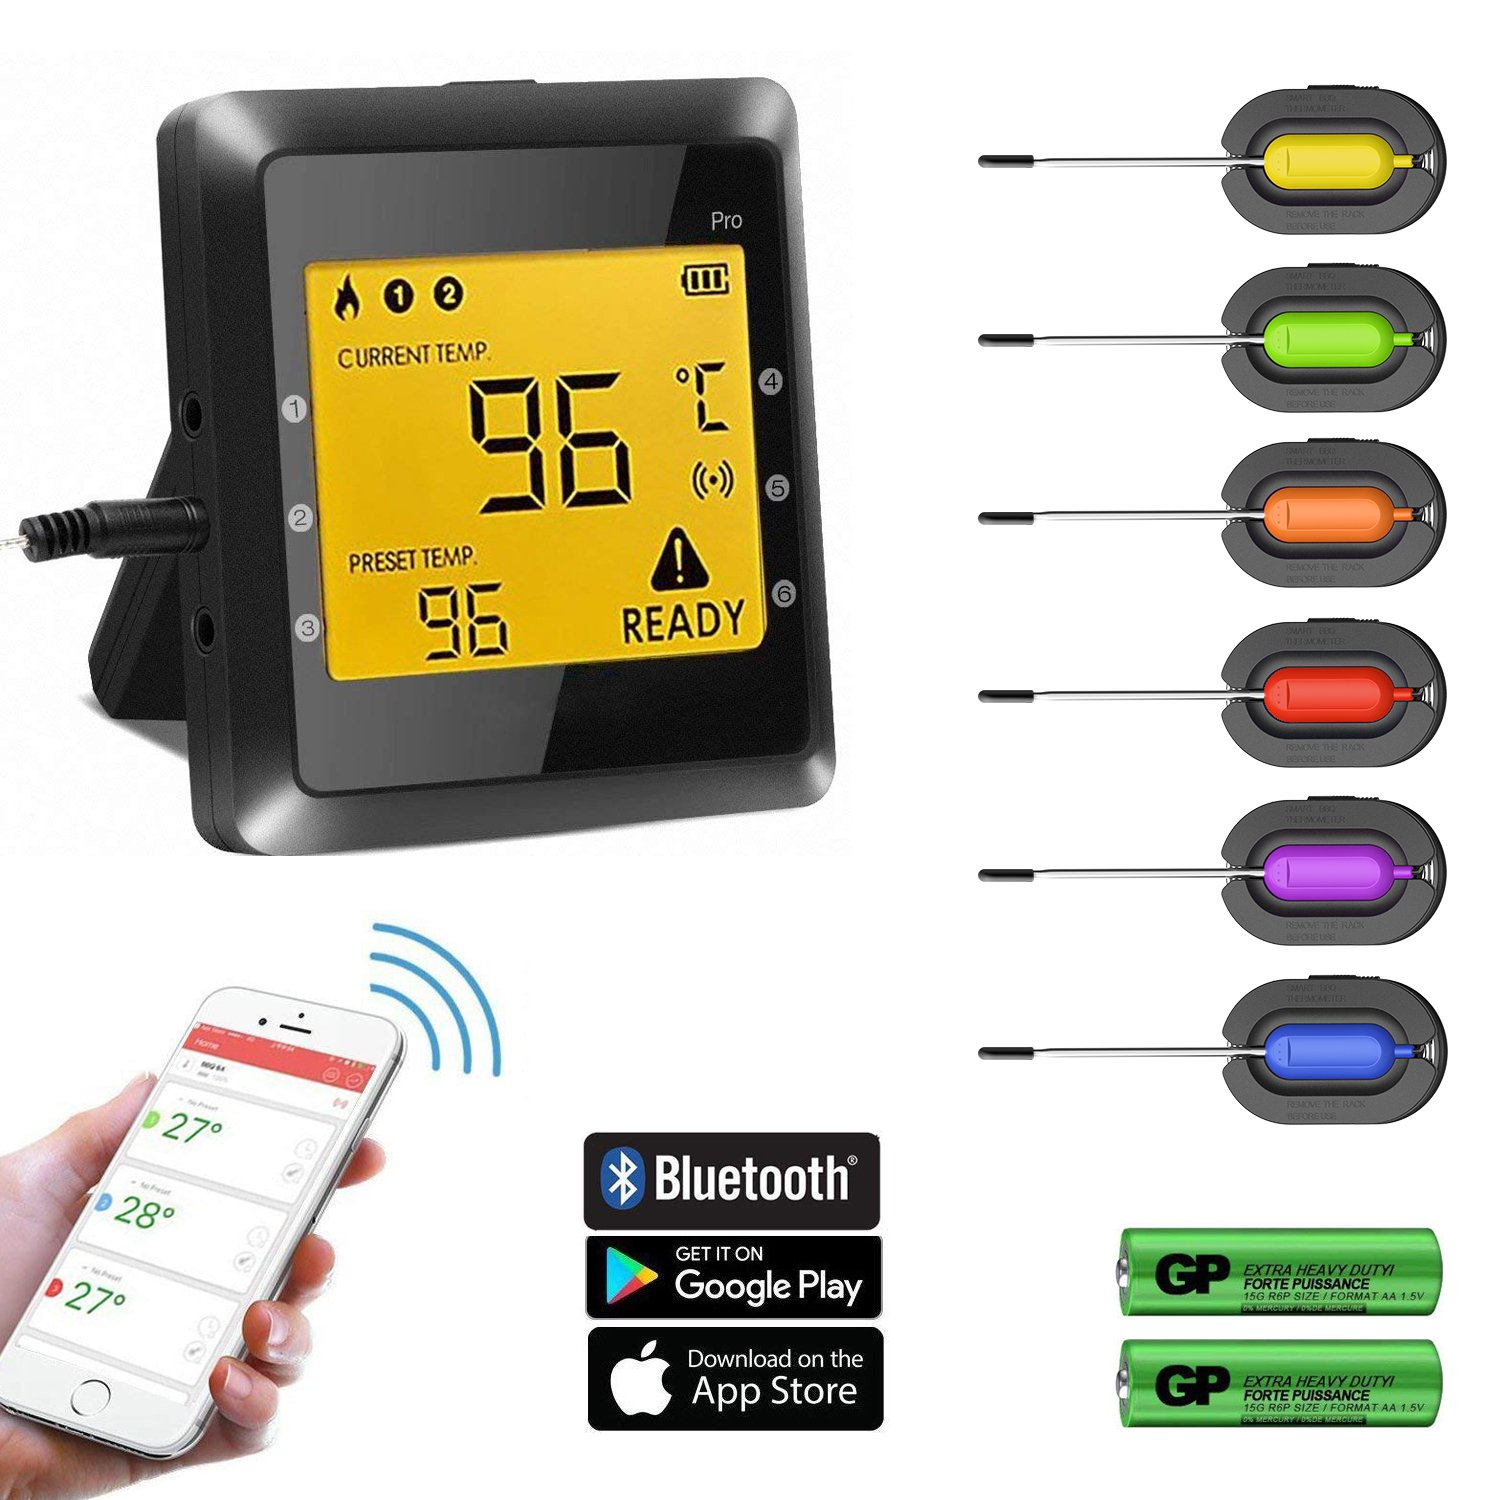 Meat Thermometer- BUKELERN Smart Food Thermometer Wireless Remote Digital Cooking BBQ Thermometer App Control for Grill Oven Kitchen Cooking with 6 Stainless Steel Probes Batteries Included